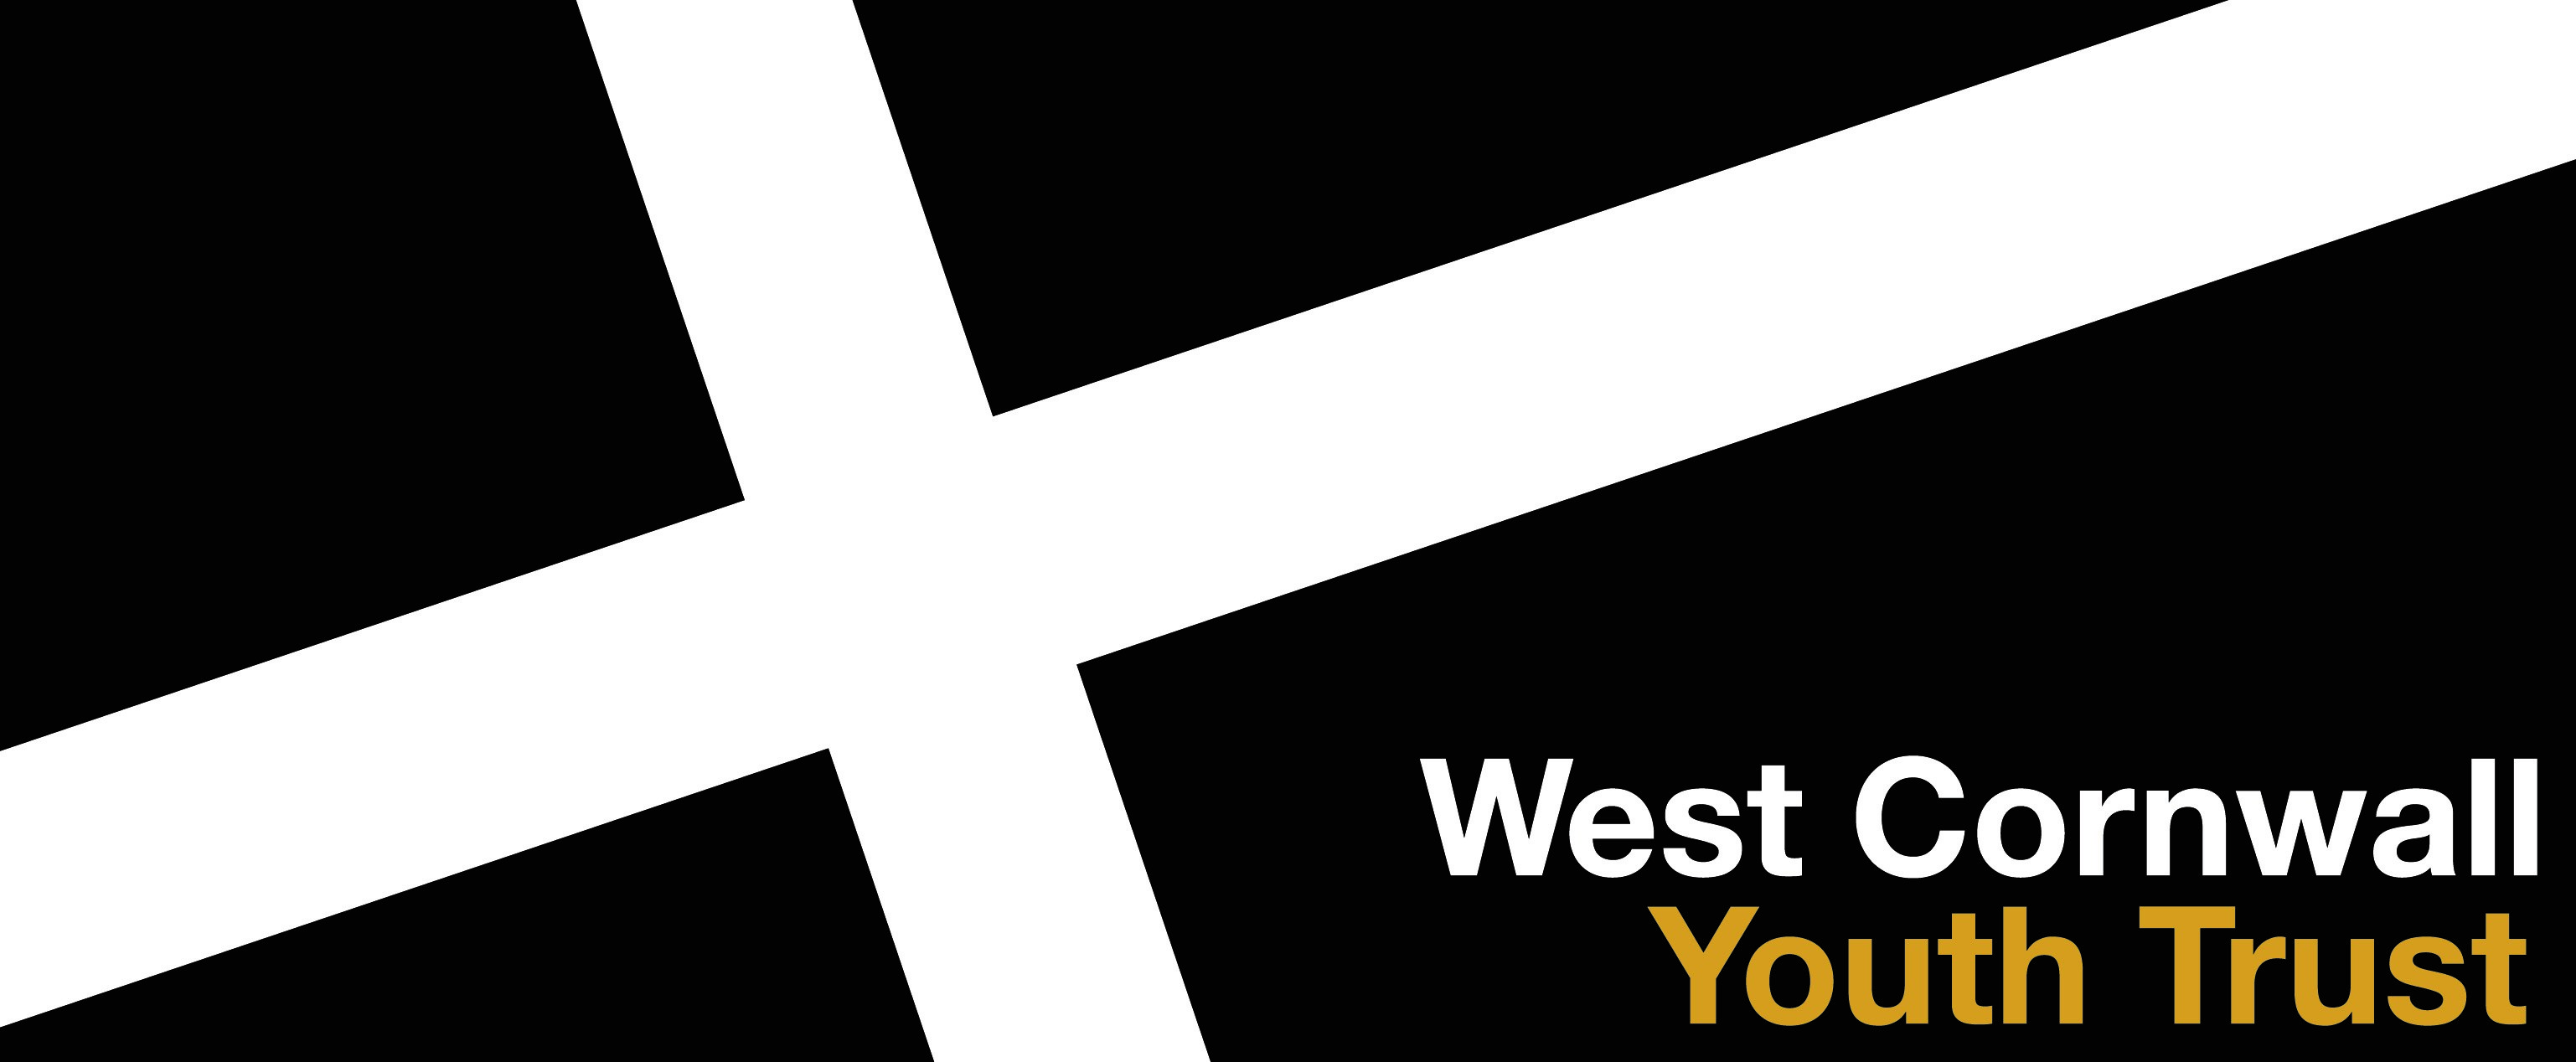 West Cornwall Youth Trust